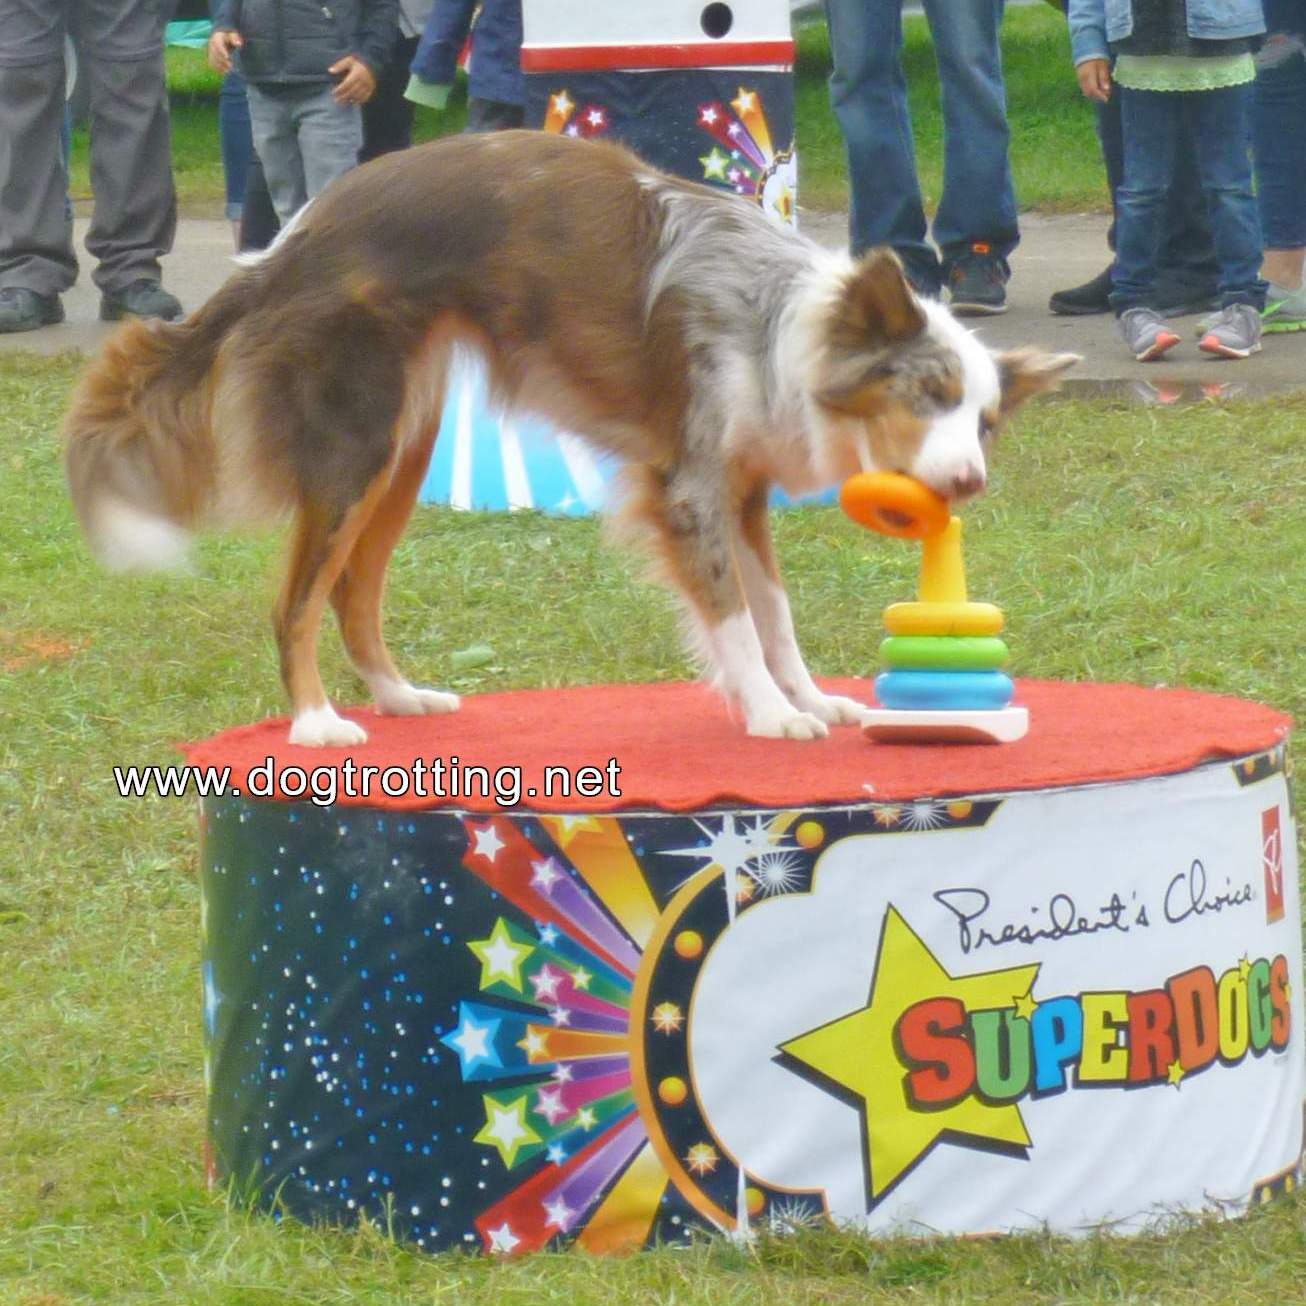 President's Choice SuperDogs border collie completing kids stacking toy